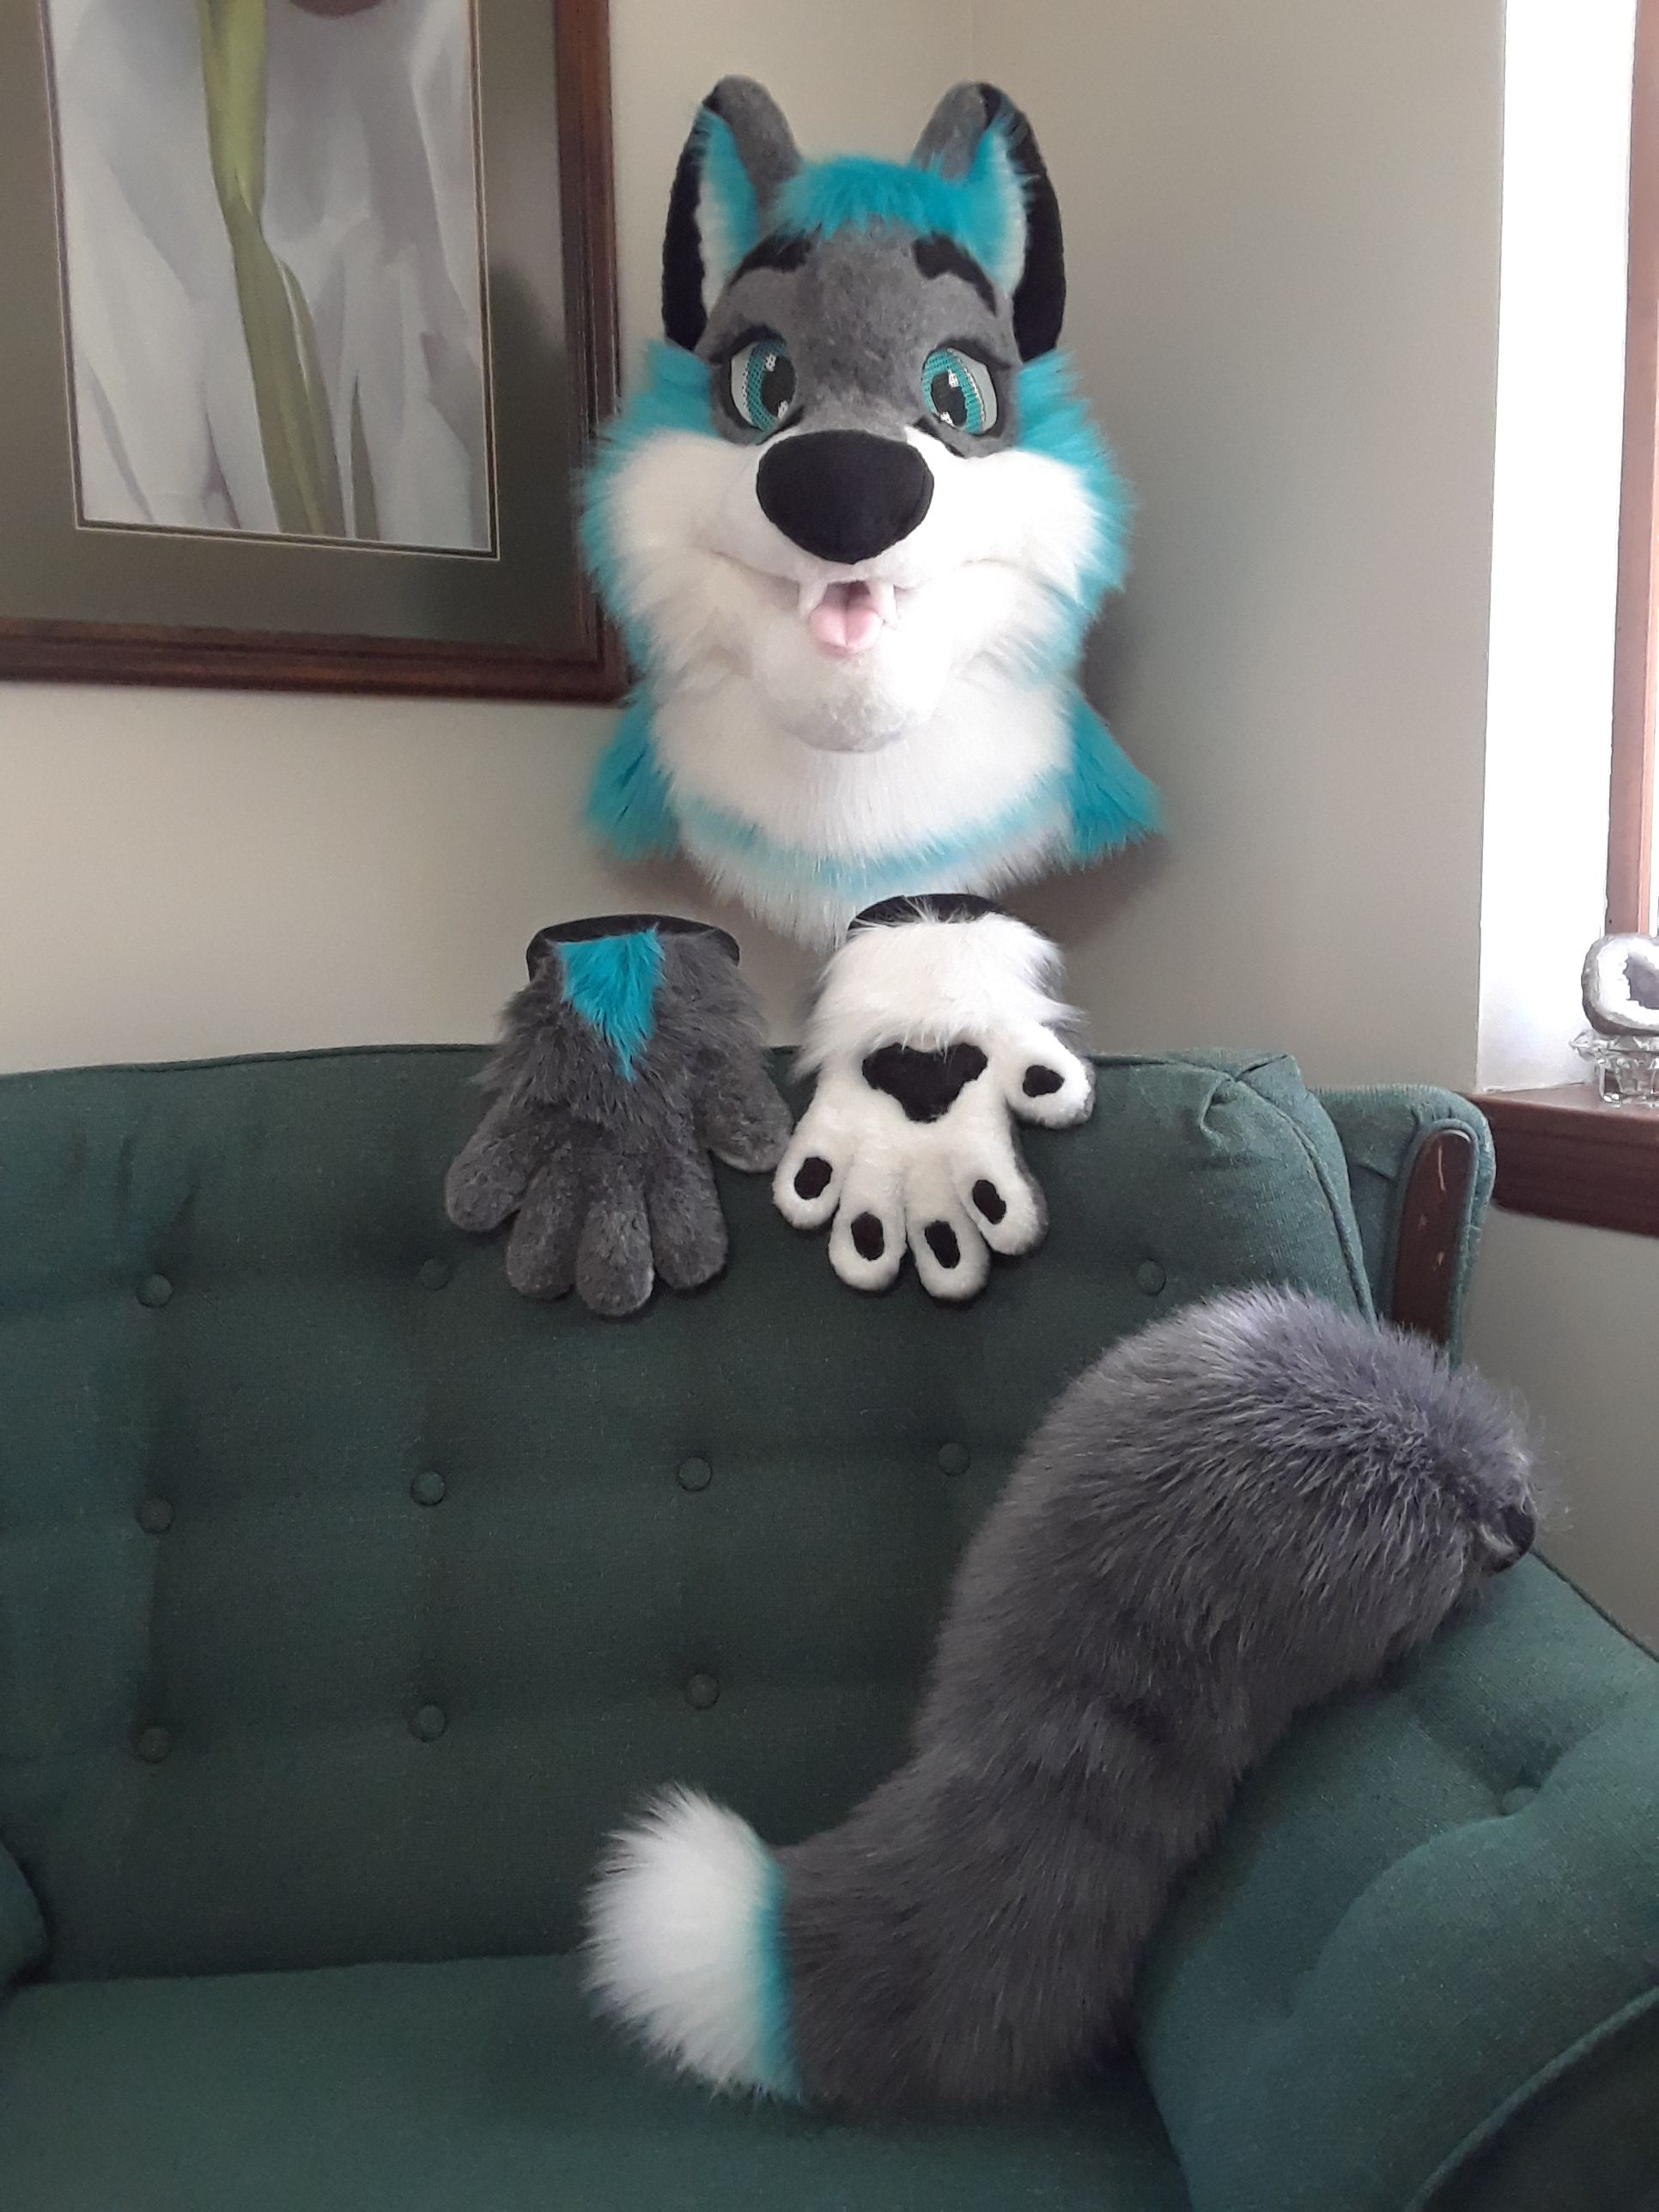 Partial Fursuit Now For Sale On Ebay Fursuit Head Fursuit Furry Suit